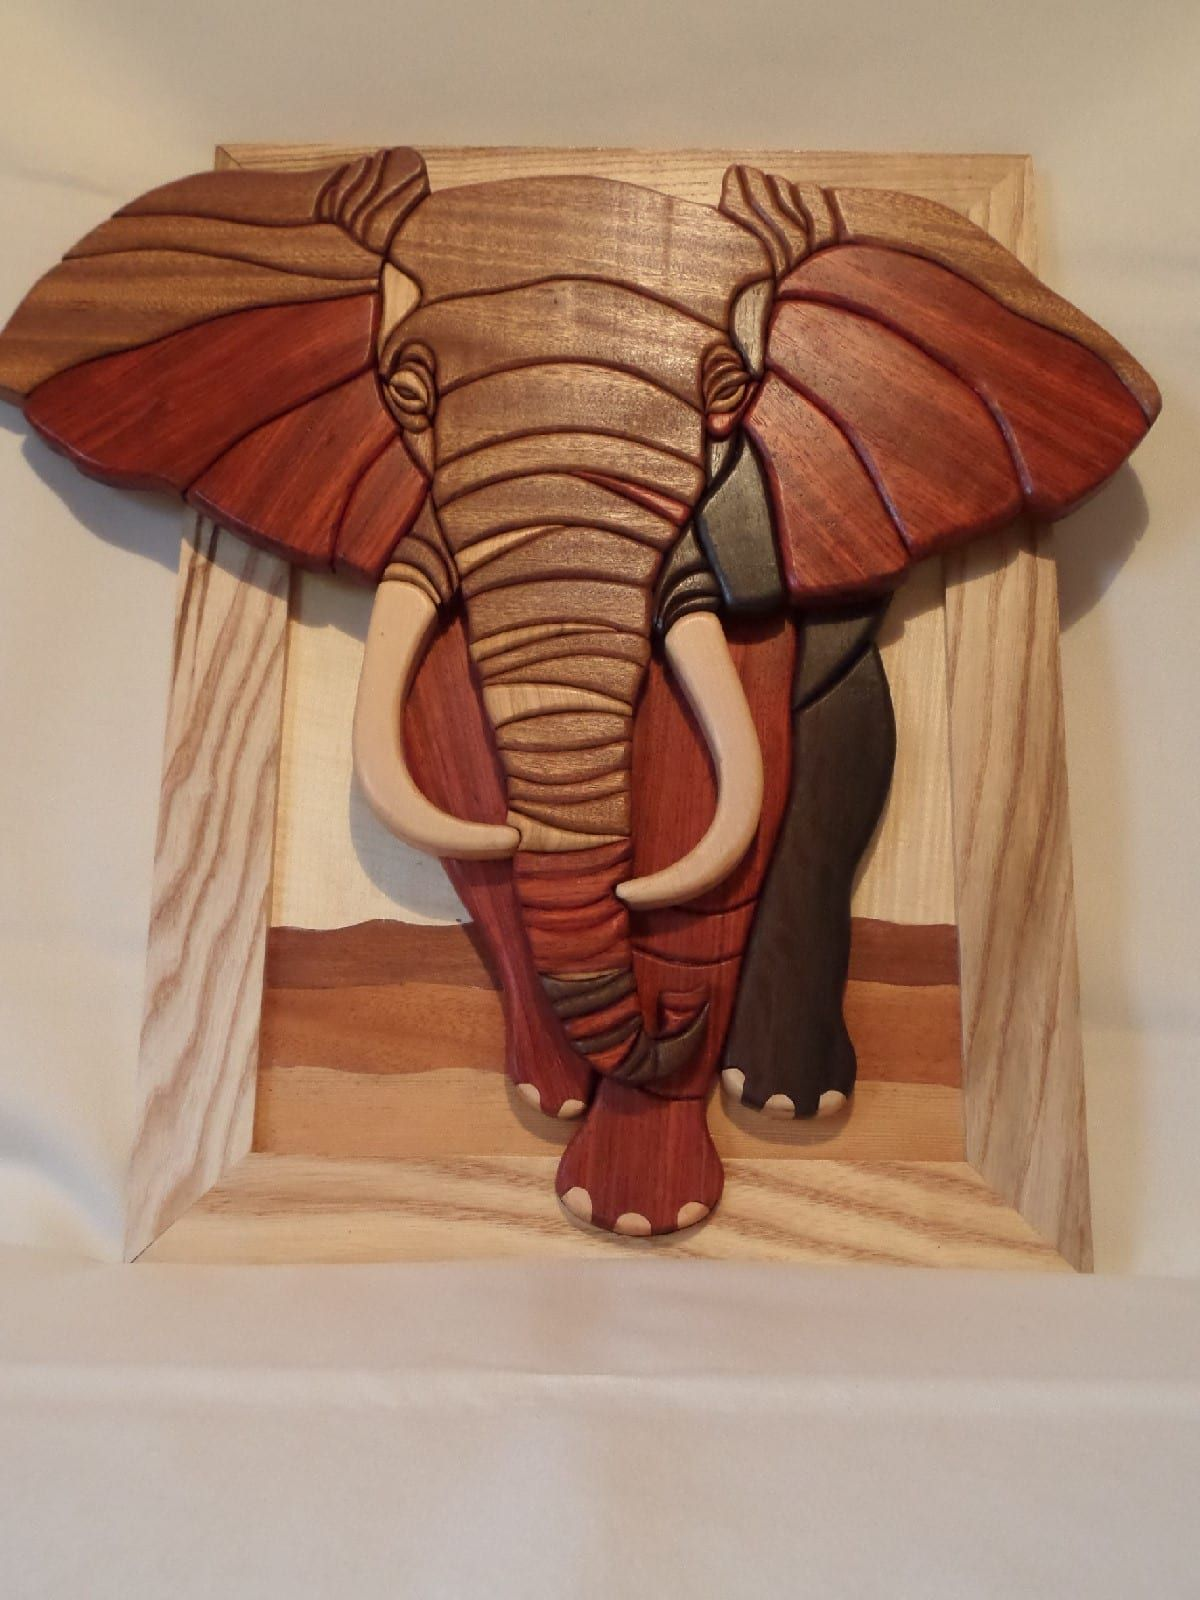 Wooden African Elephant Wall Art Whitlockwoodendesigns Com Intarsia Wood Patterns Intarsia Wood Wood Carving Patterns